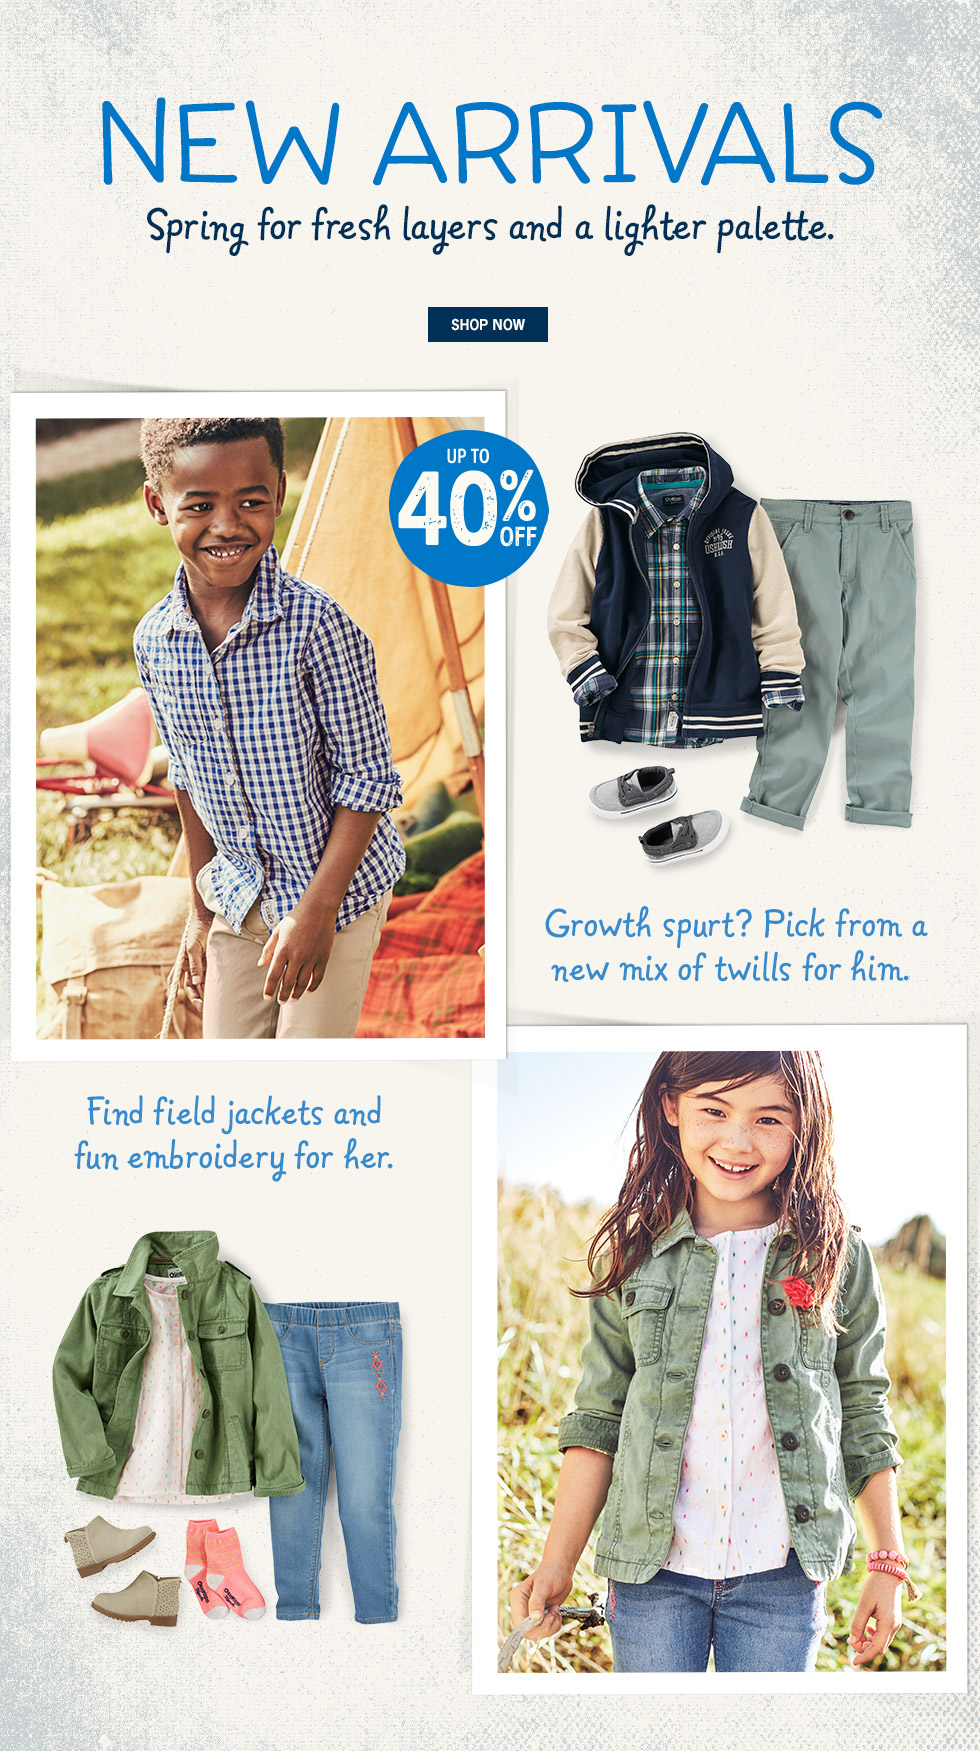 NEW ARRIVALS: Spring for fresh layers and a lighter palette. UP TO 40% OFF. Growth spurt? Pick from a new mix of twills for him. Find field jackets and fun embroidery for her.